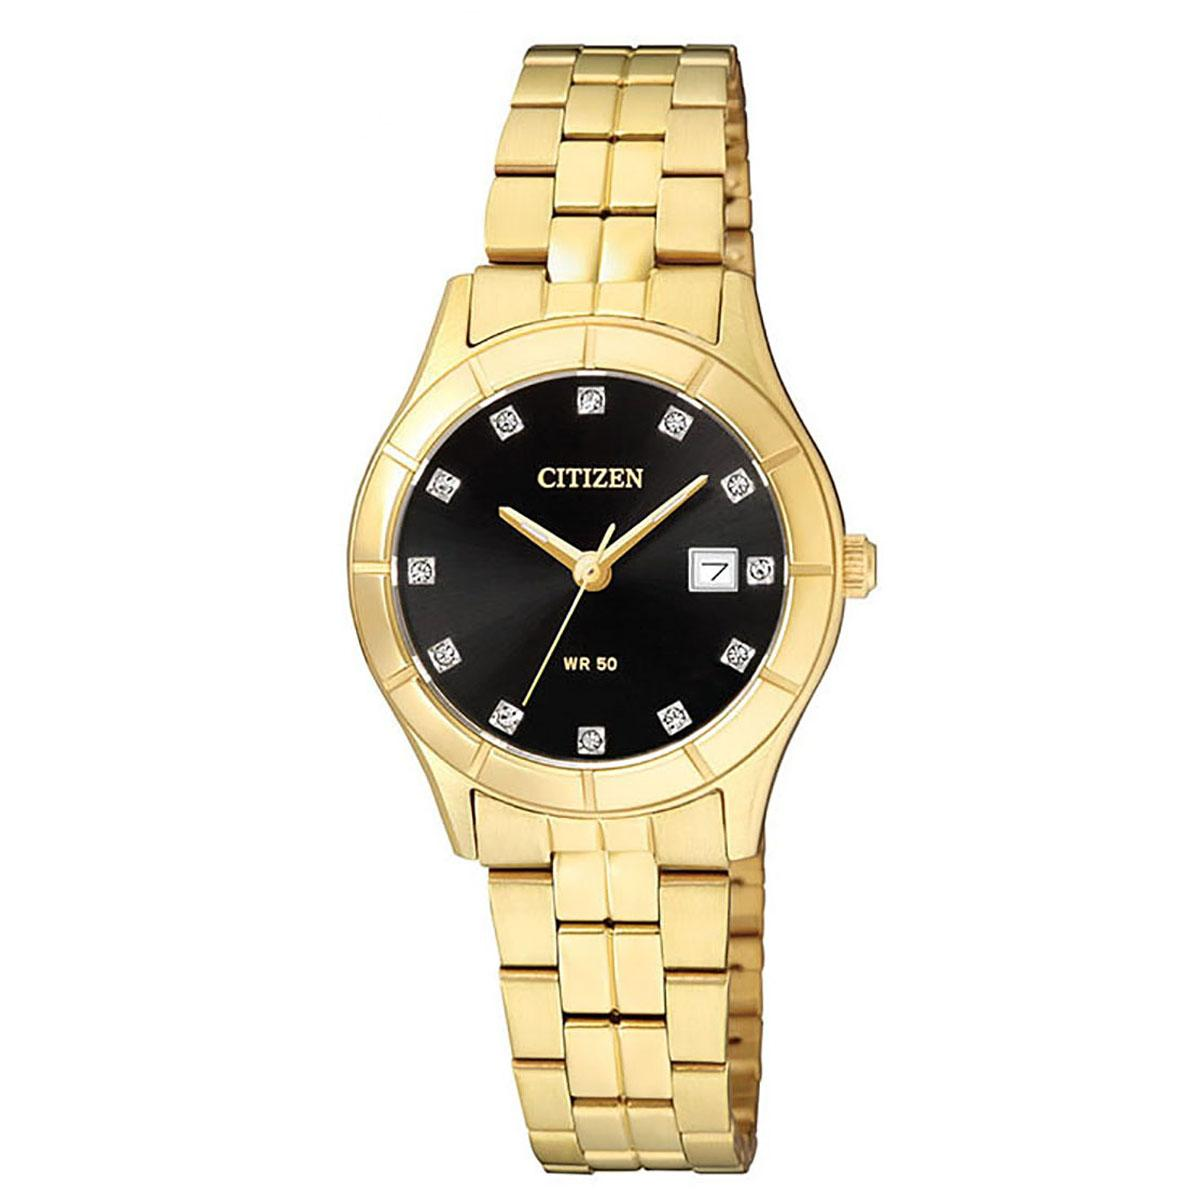 Price Comparisons For Citizen Citizen Quartz Gold Stainless Steel Case Stainless Steel Bracelet Ladies Eu6042 57E